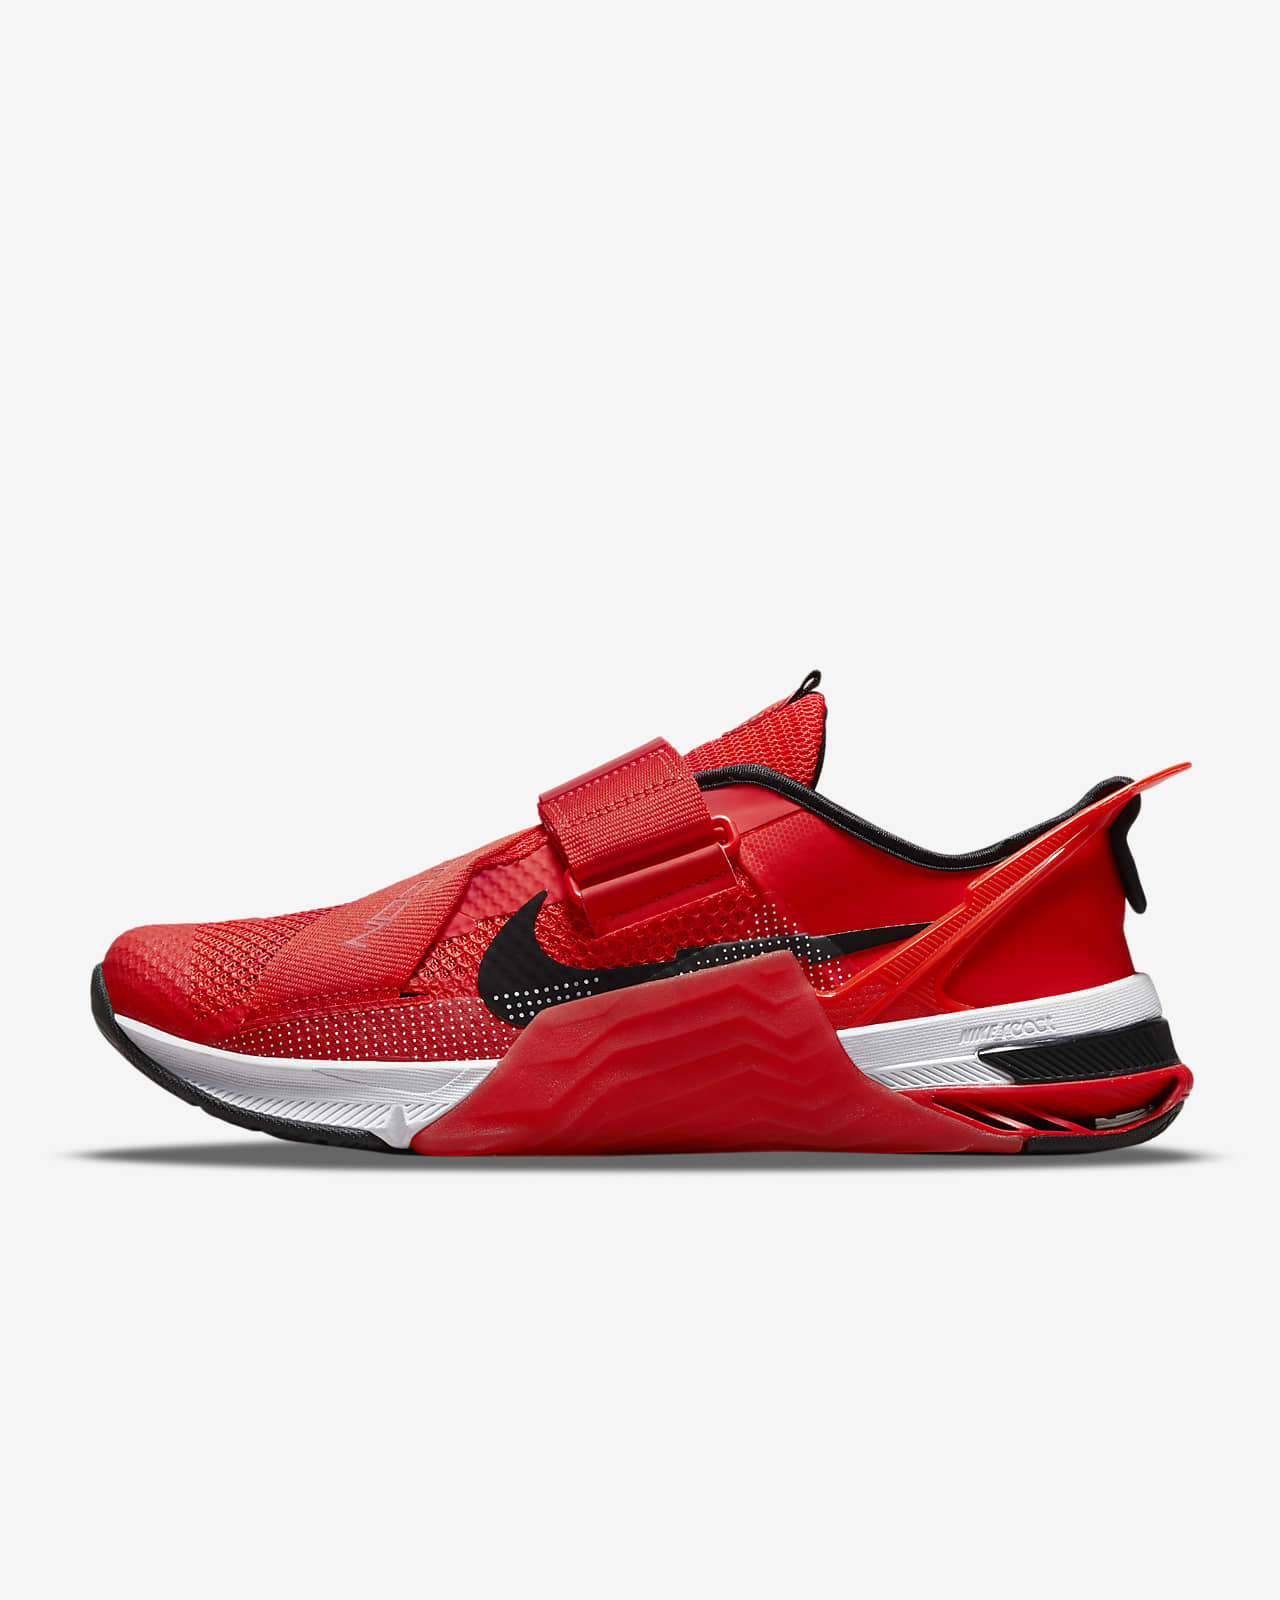 Nike Metcon 7 FlyEase Training Shoes